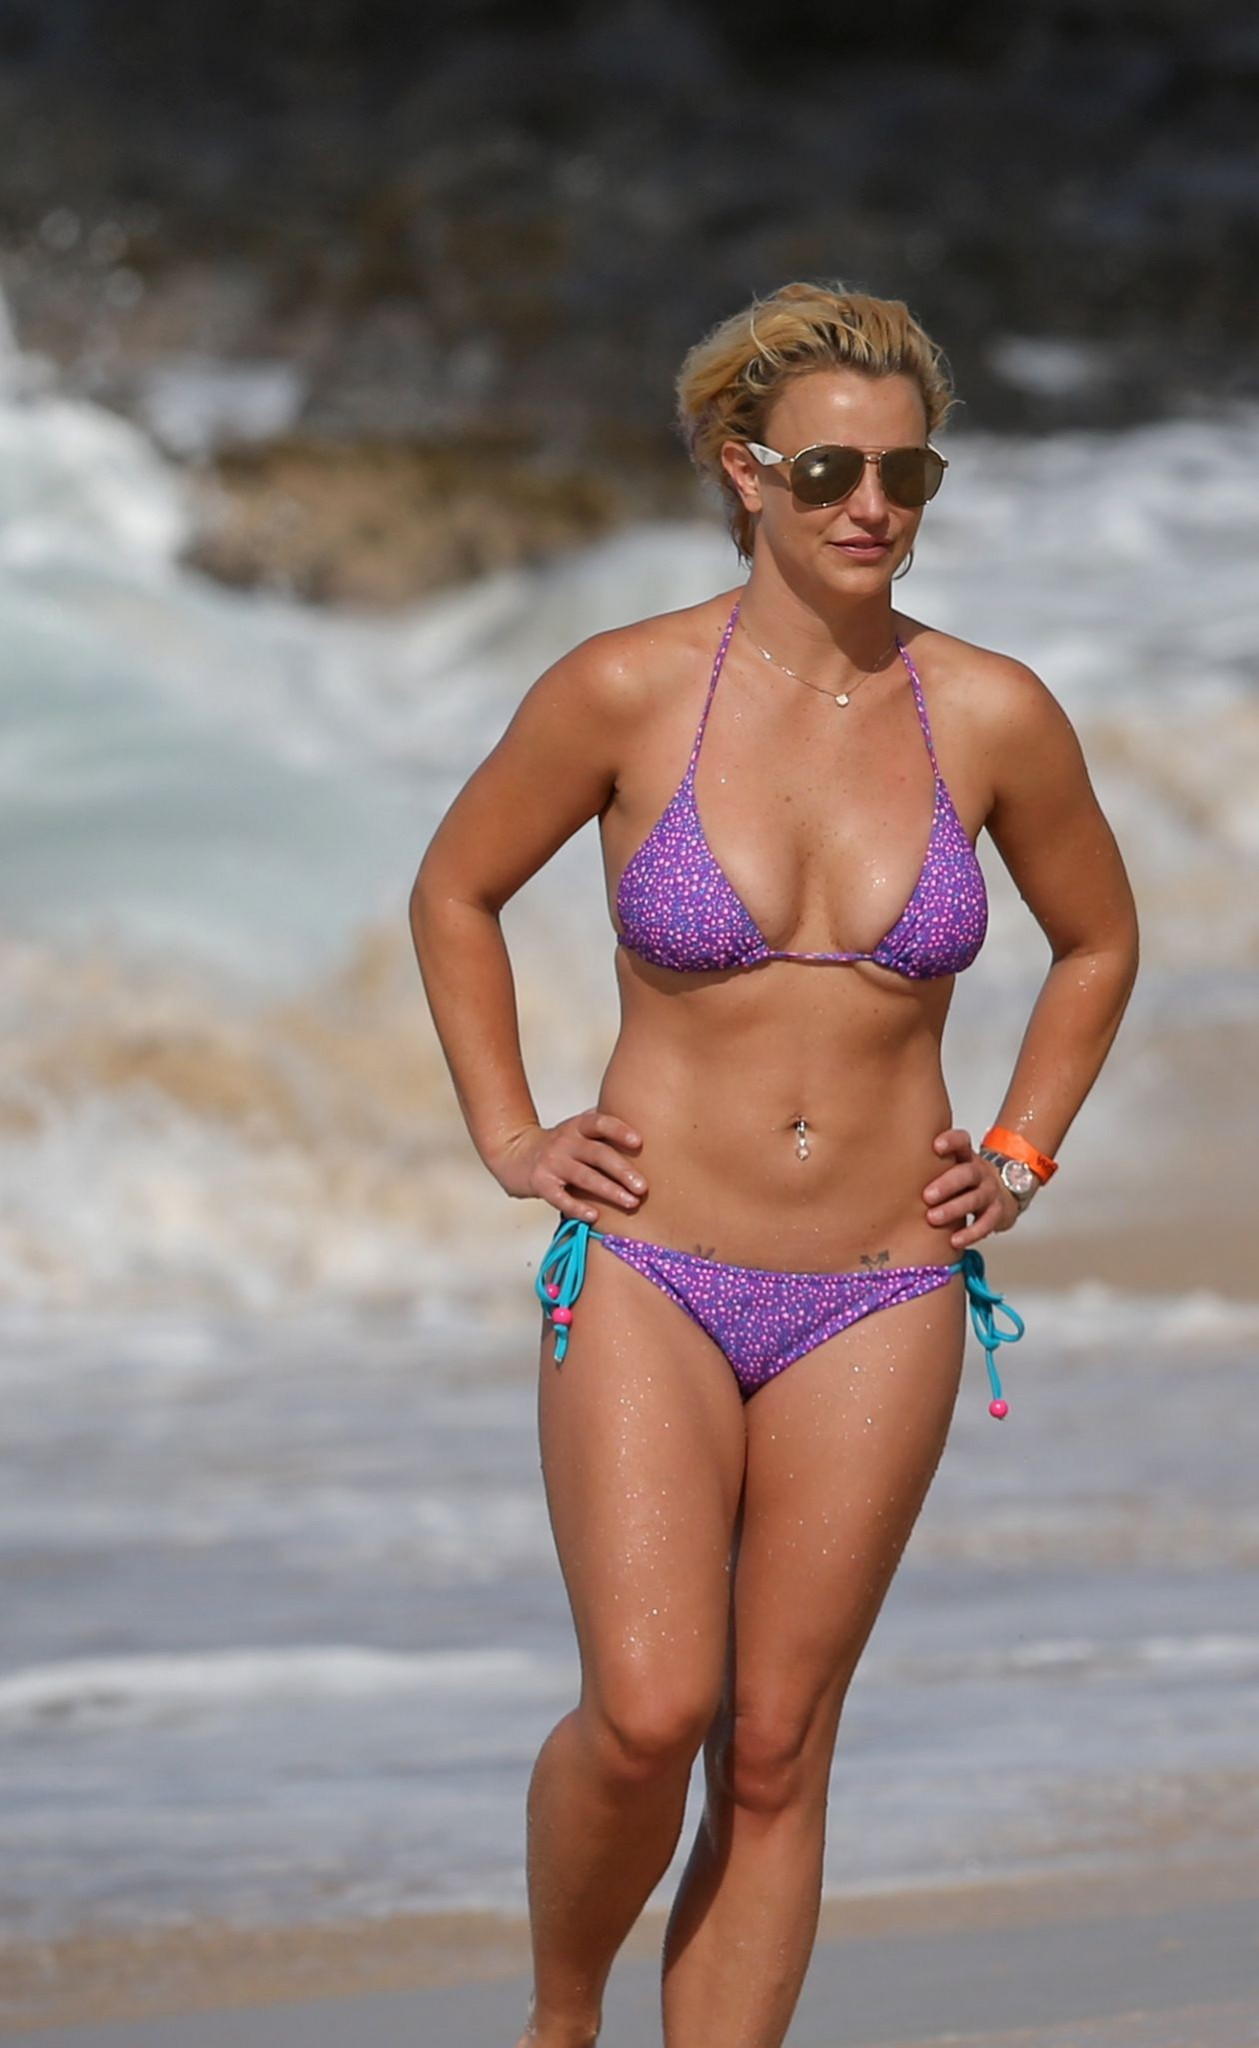 britney-spears-wearing-a-bikini-in-hawaii-04